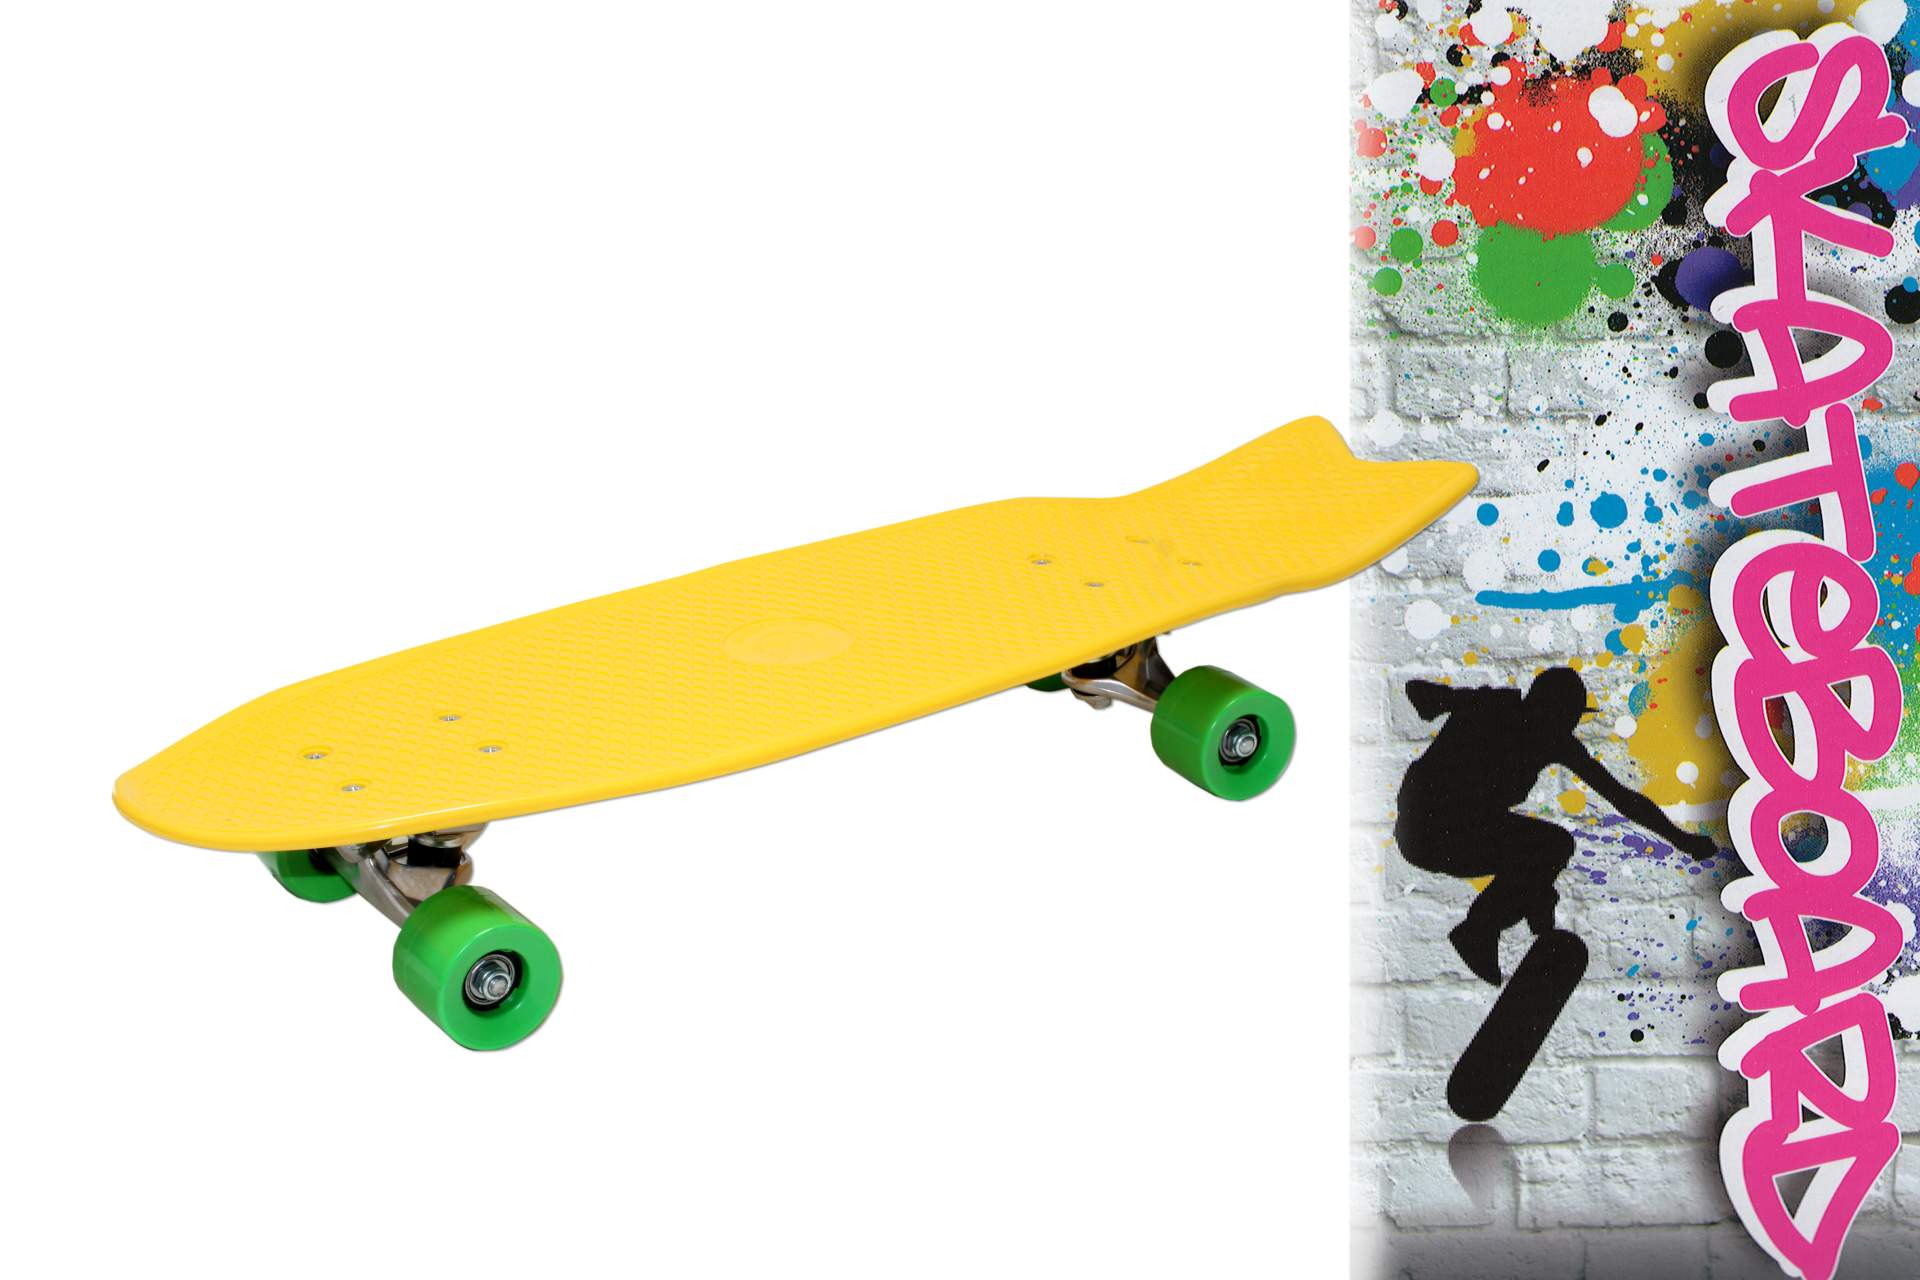 skateboard 27 68 cm f r kinder abec 5 kugellager retro. Black Bedroom Furniture Sets. Home Design Ideas